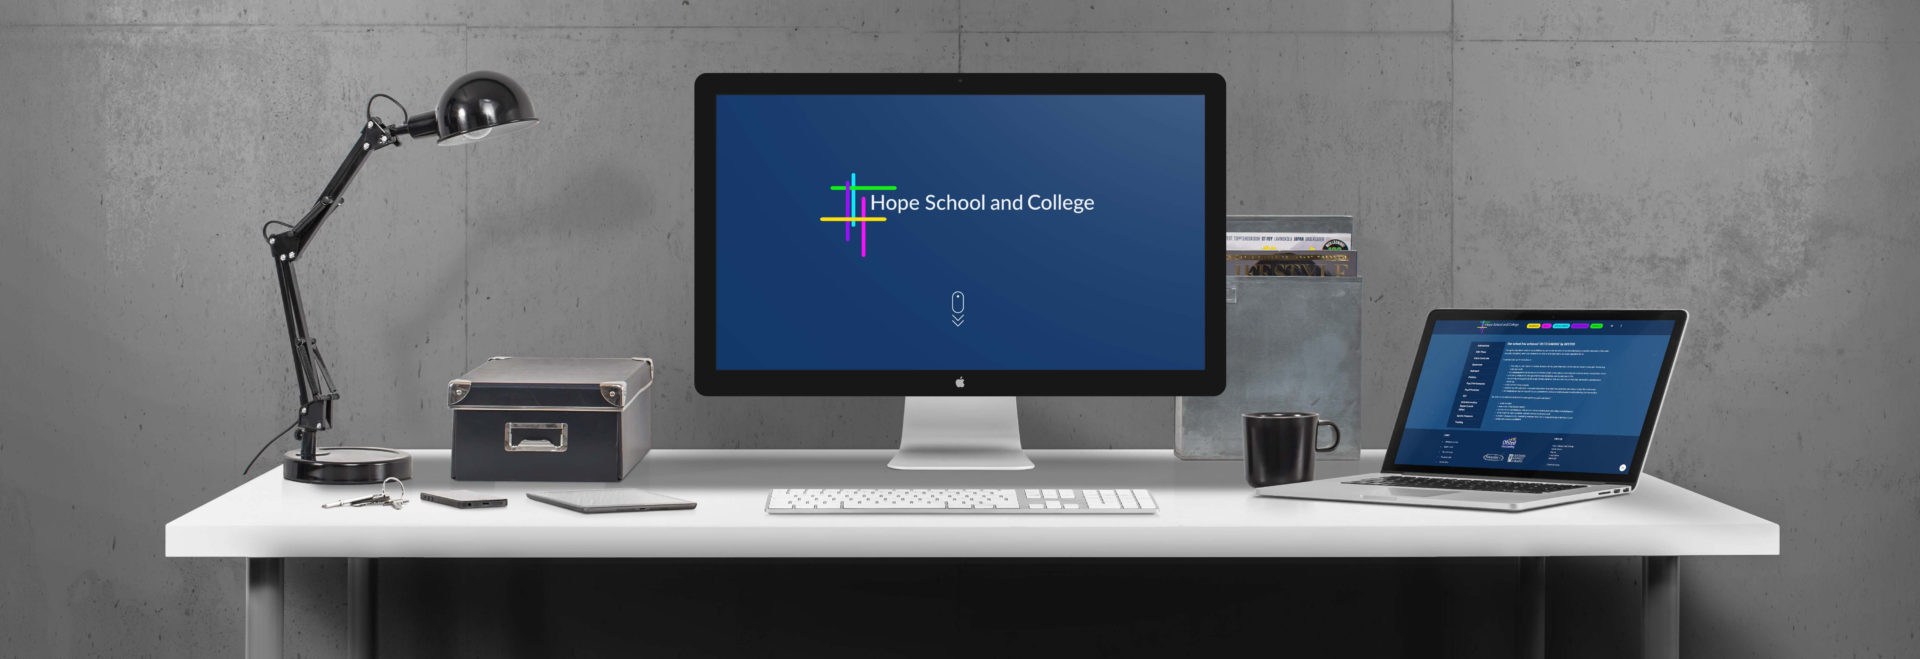 Hope School and College